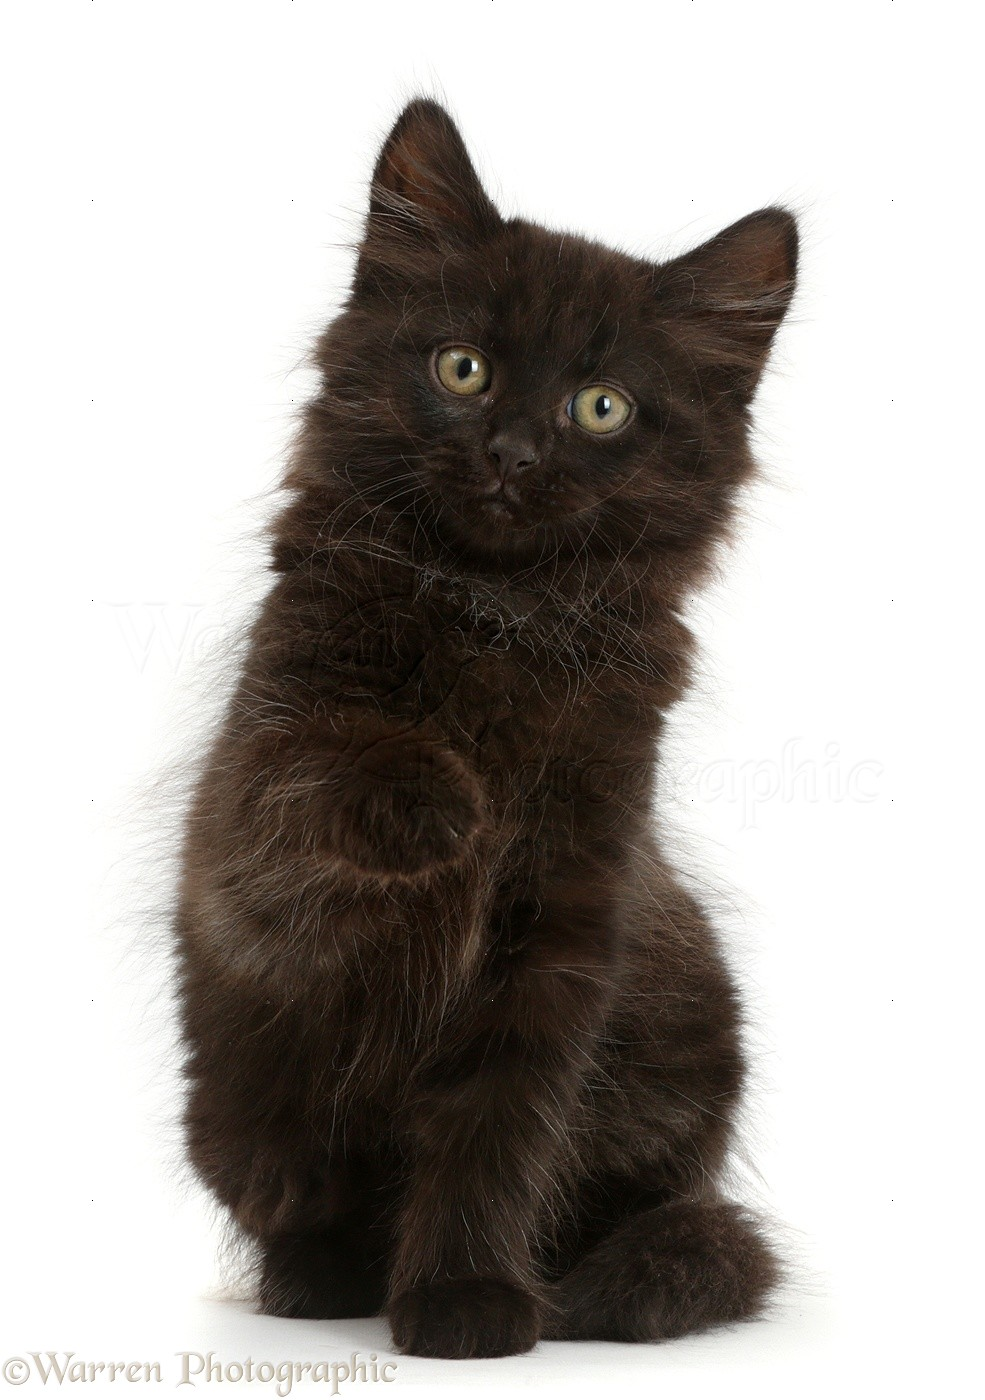 Fluffy Black Kitten 10 Weeks Old Photo Wp41407